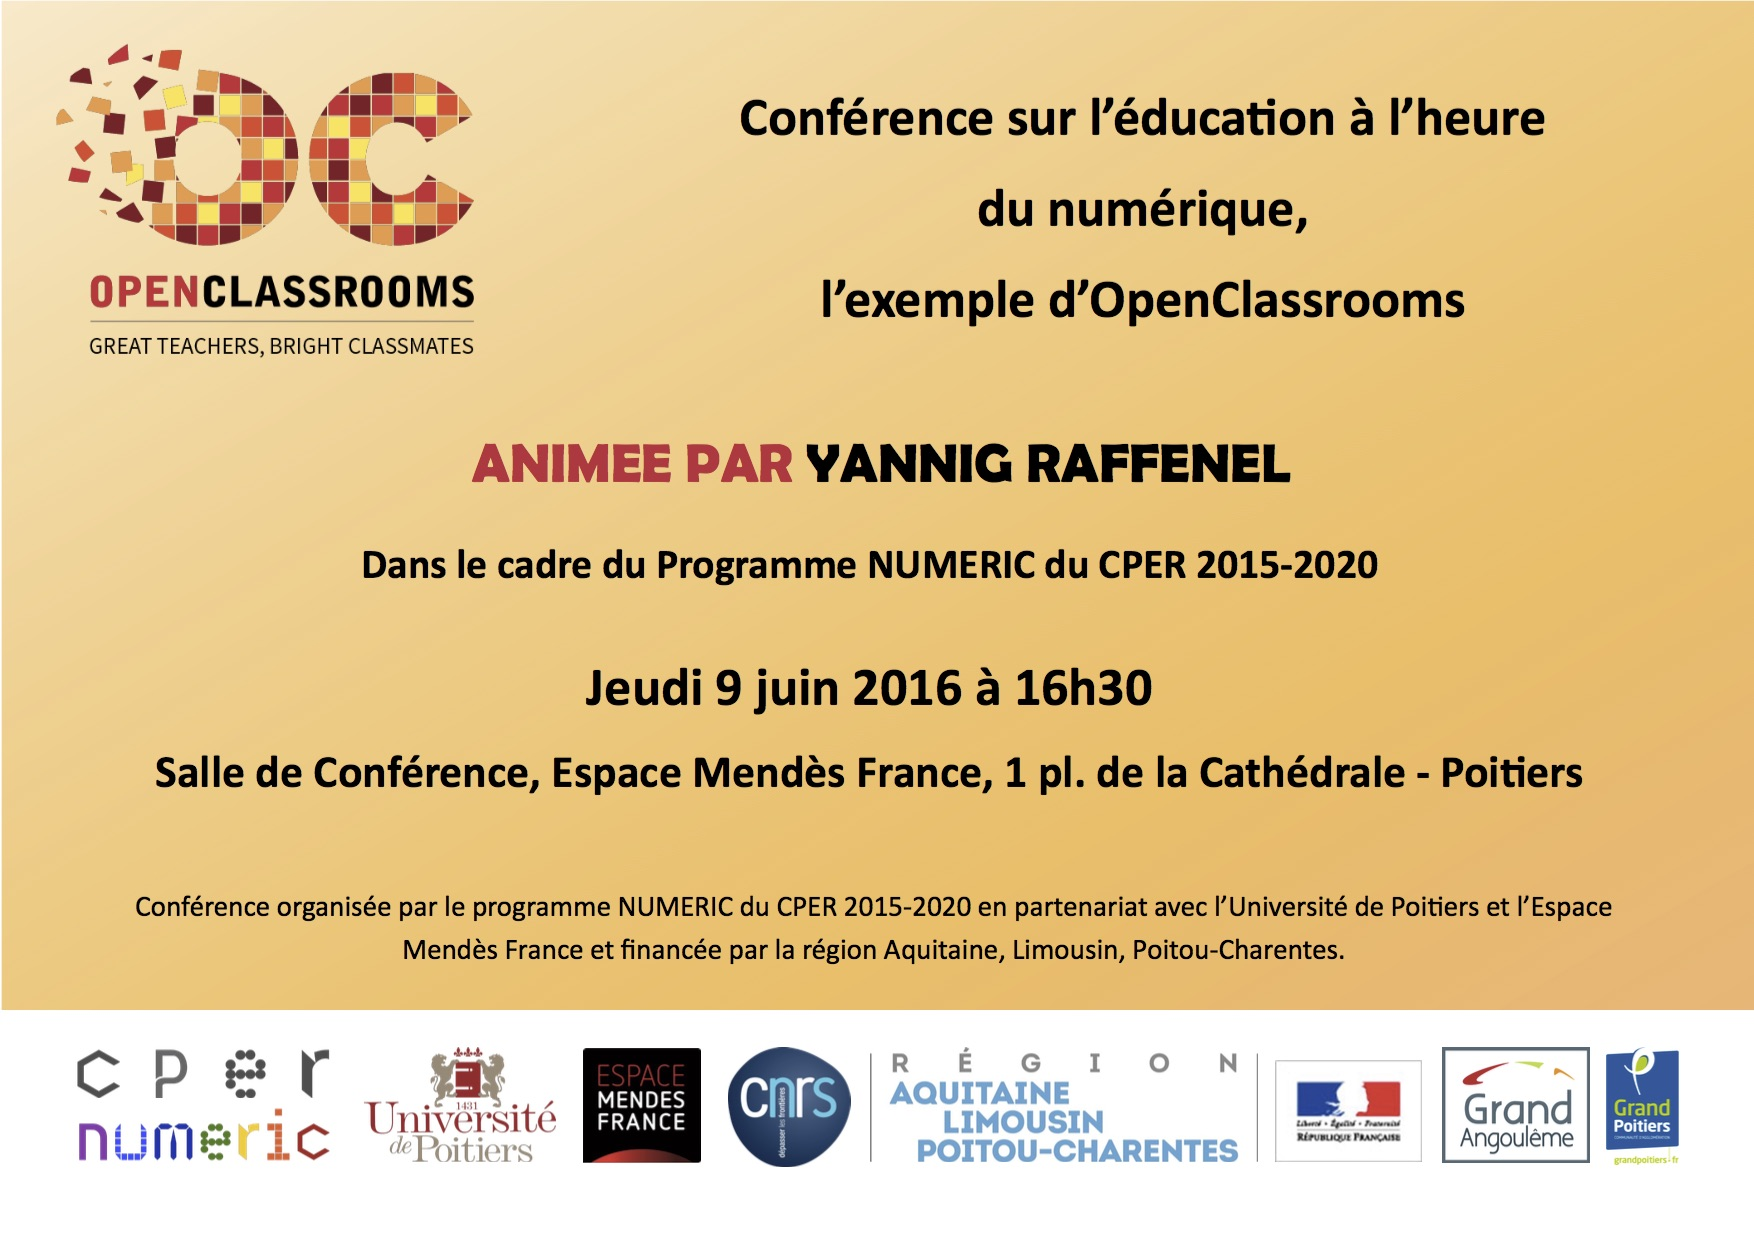 affiche_openclassrooms_9juin2016